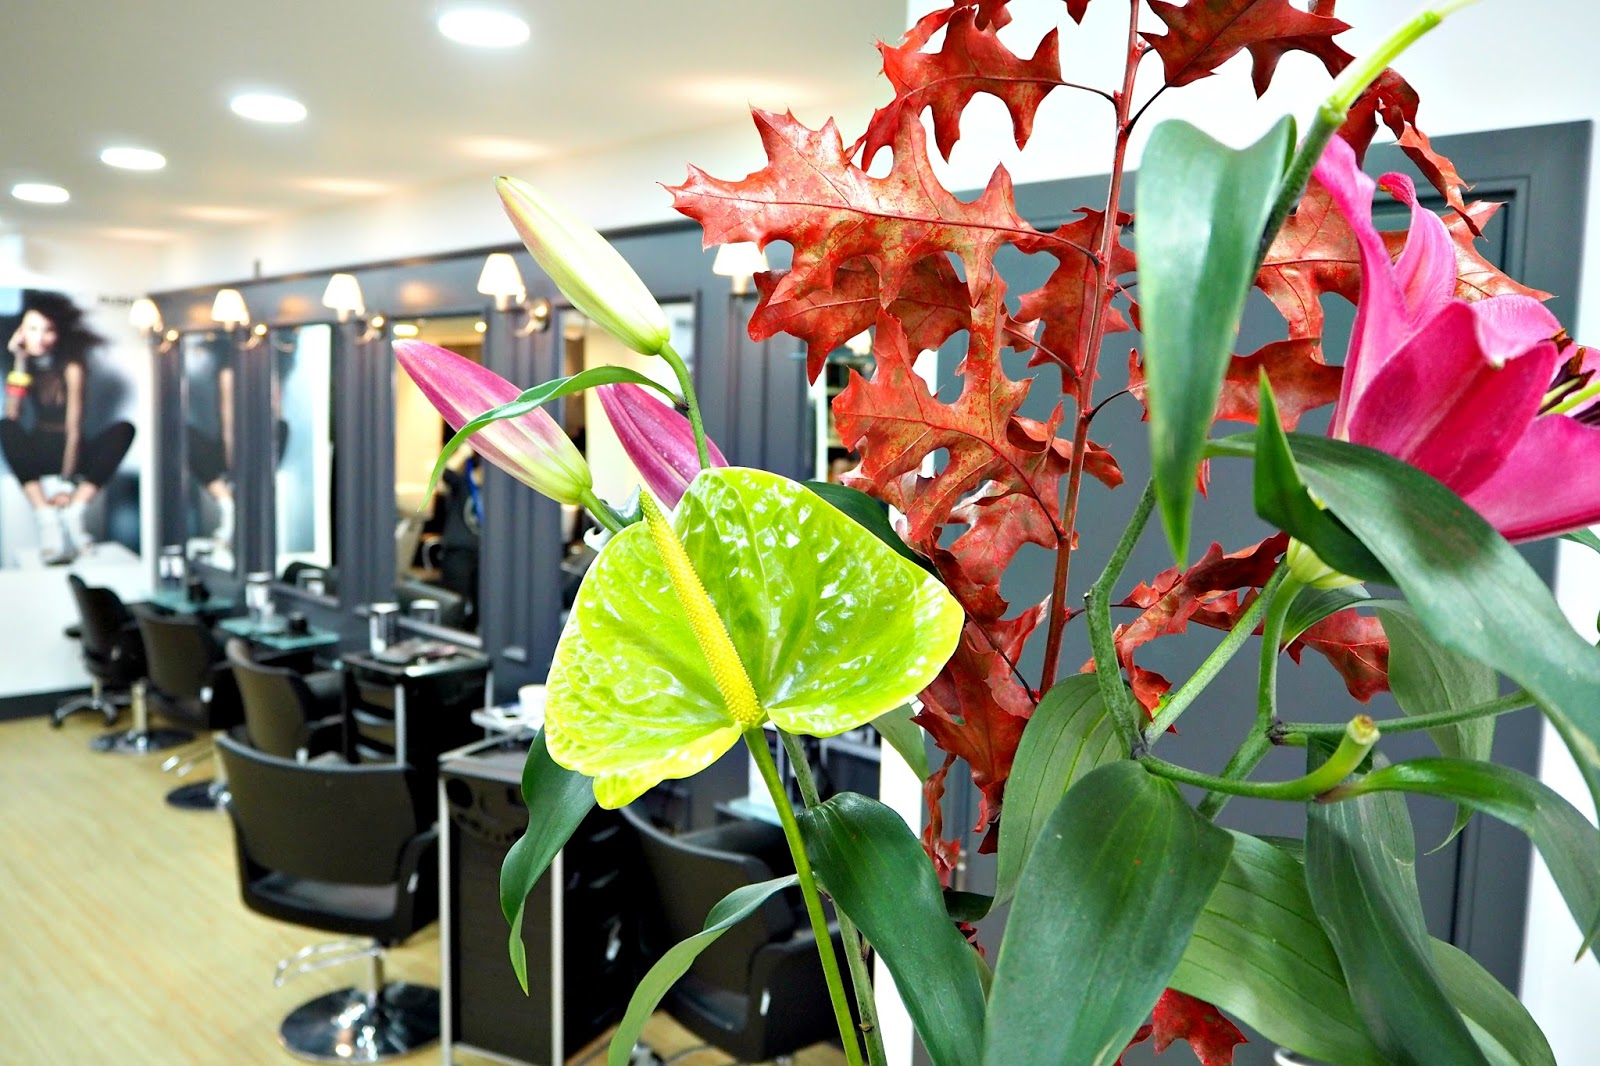 The new RUSH hair salon East Grinstead, West Sussex